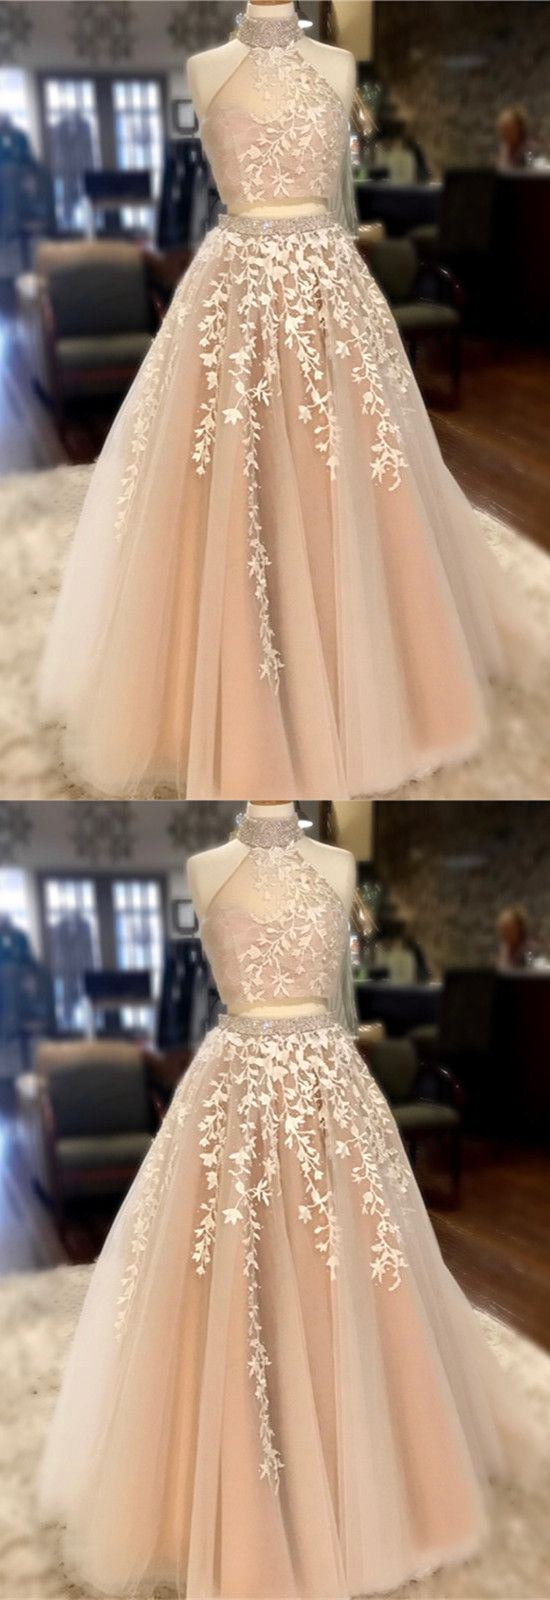 Wedding dress high neck open back  High Neck Open Back Tulle Prom Dresses Two Piece Quinceanera Dress